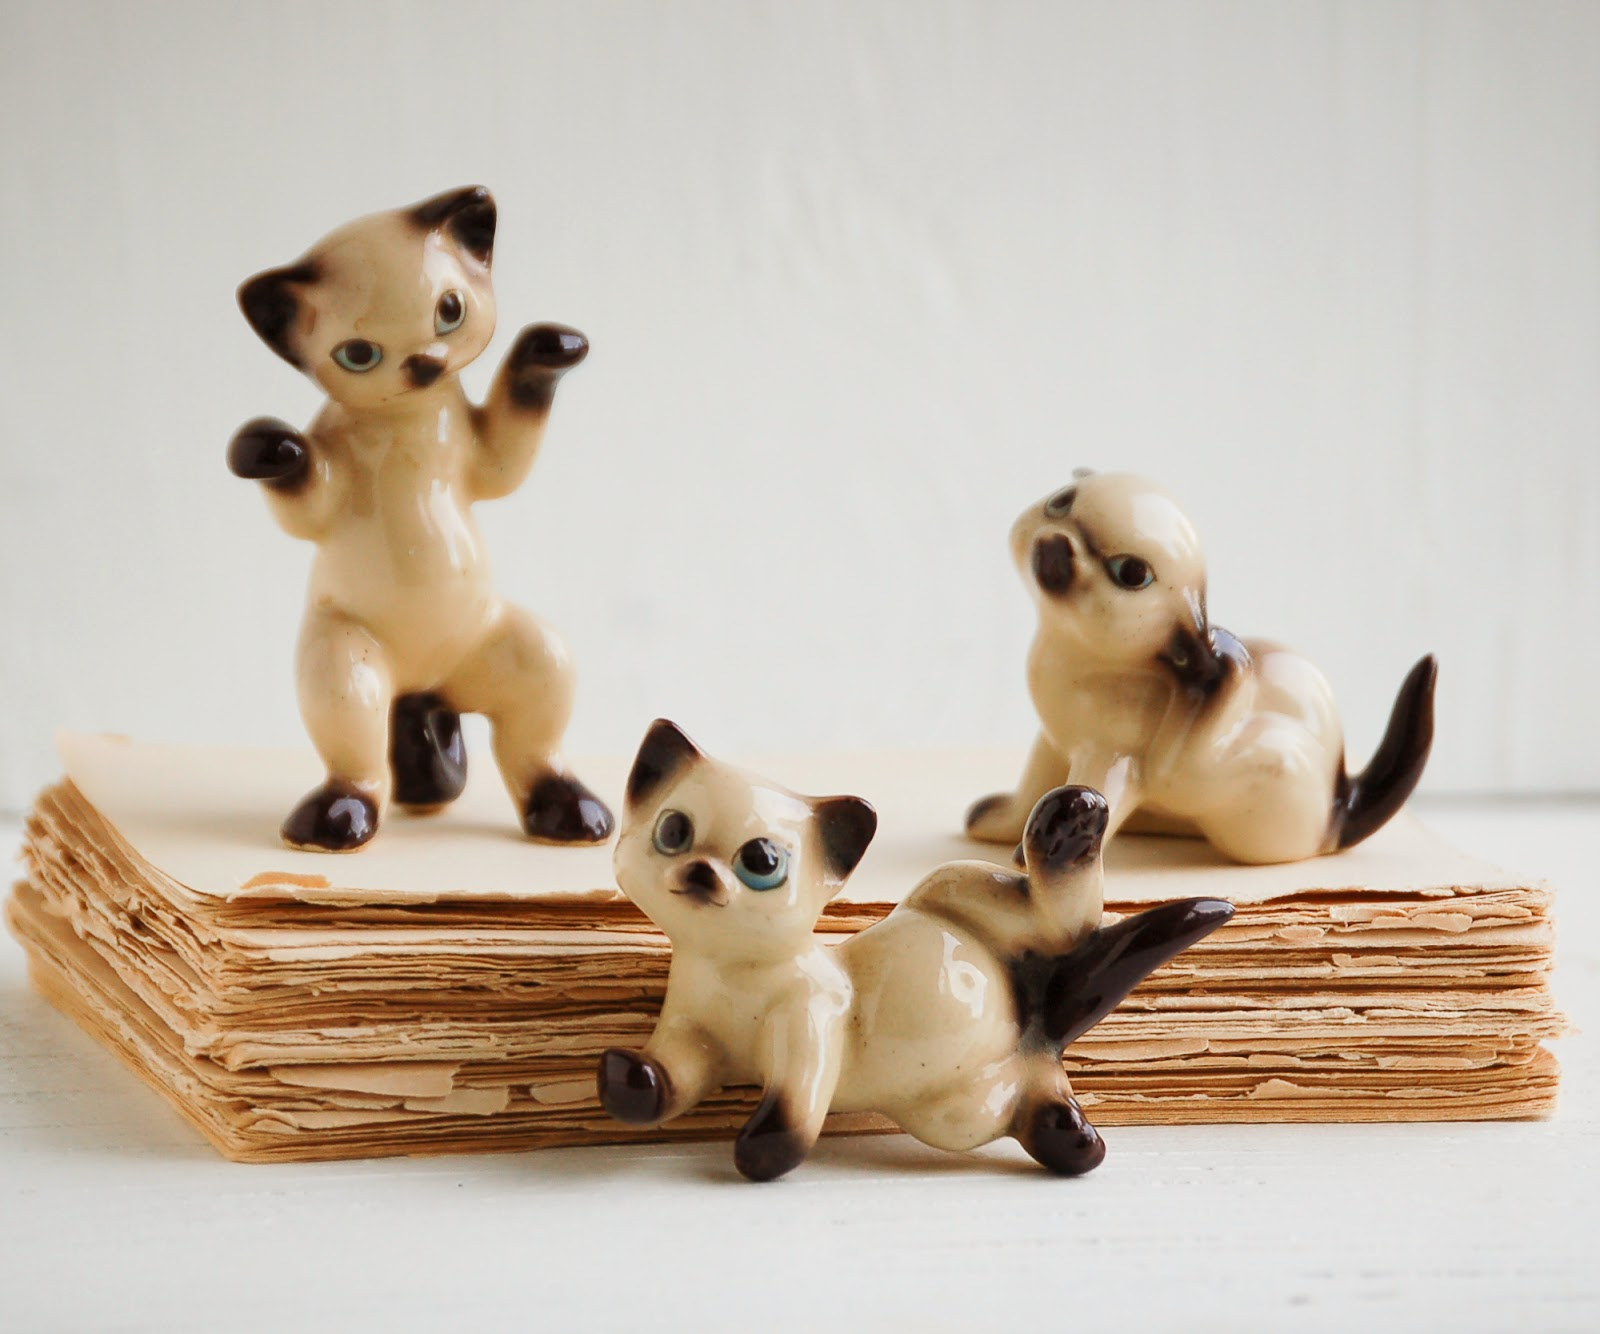 https://www.etsy.com/listing/186877394/vintage-siamese-kittens-siamese-cat?ref=shop_home_active_7